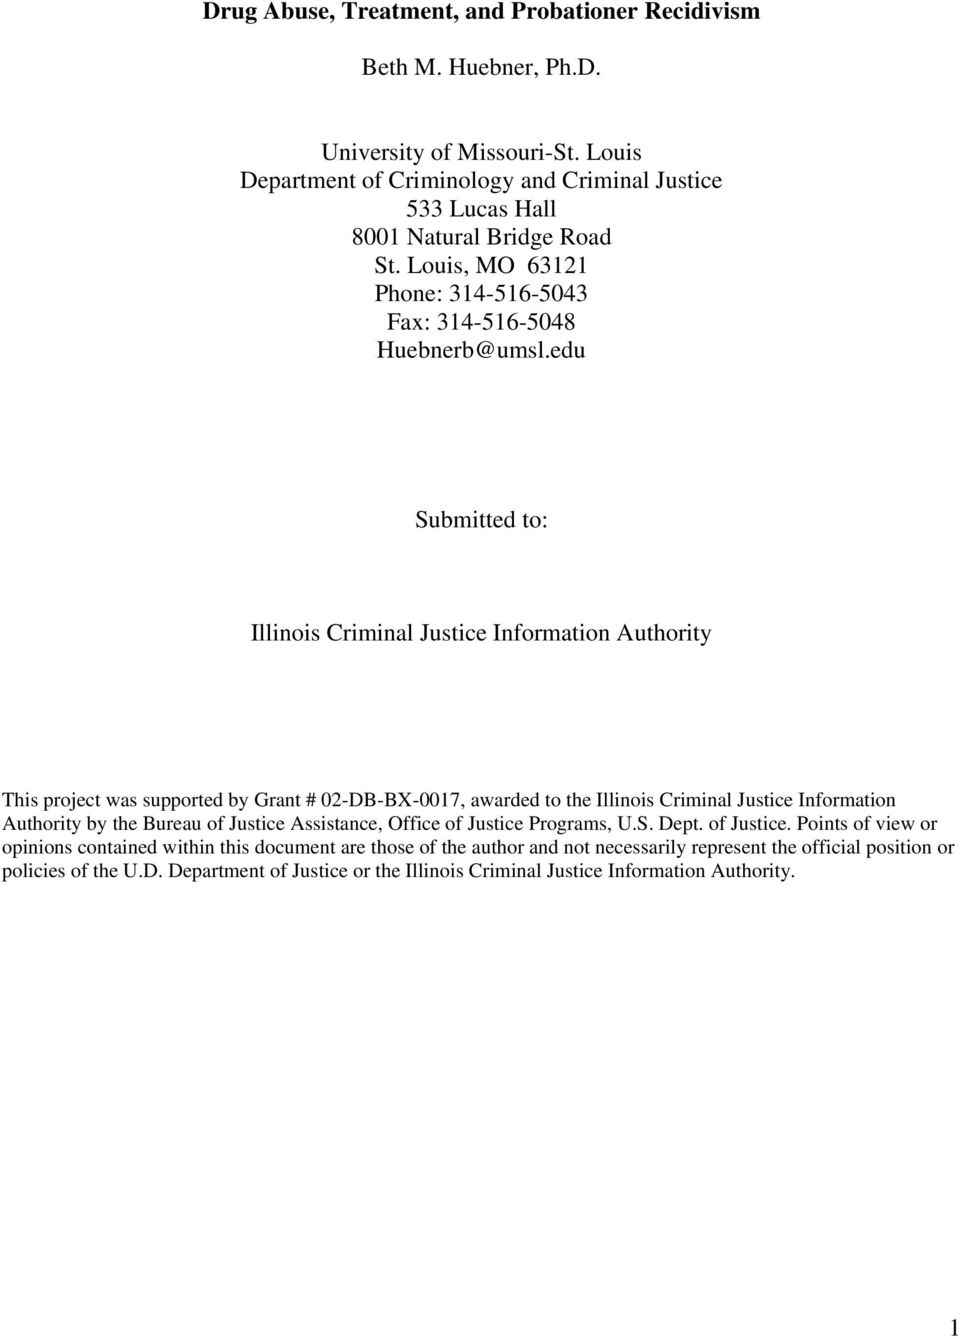 edu Submitted to: Illinois Criminal Justice Information Authority This project was supported by Grant # 02-DB-BX-0017, awarded to the Illinois Criminal Justice Information Authority by the